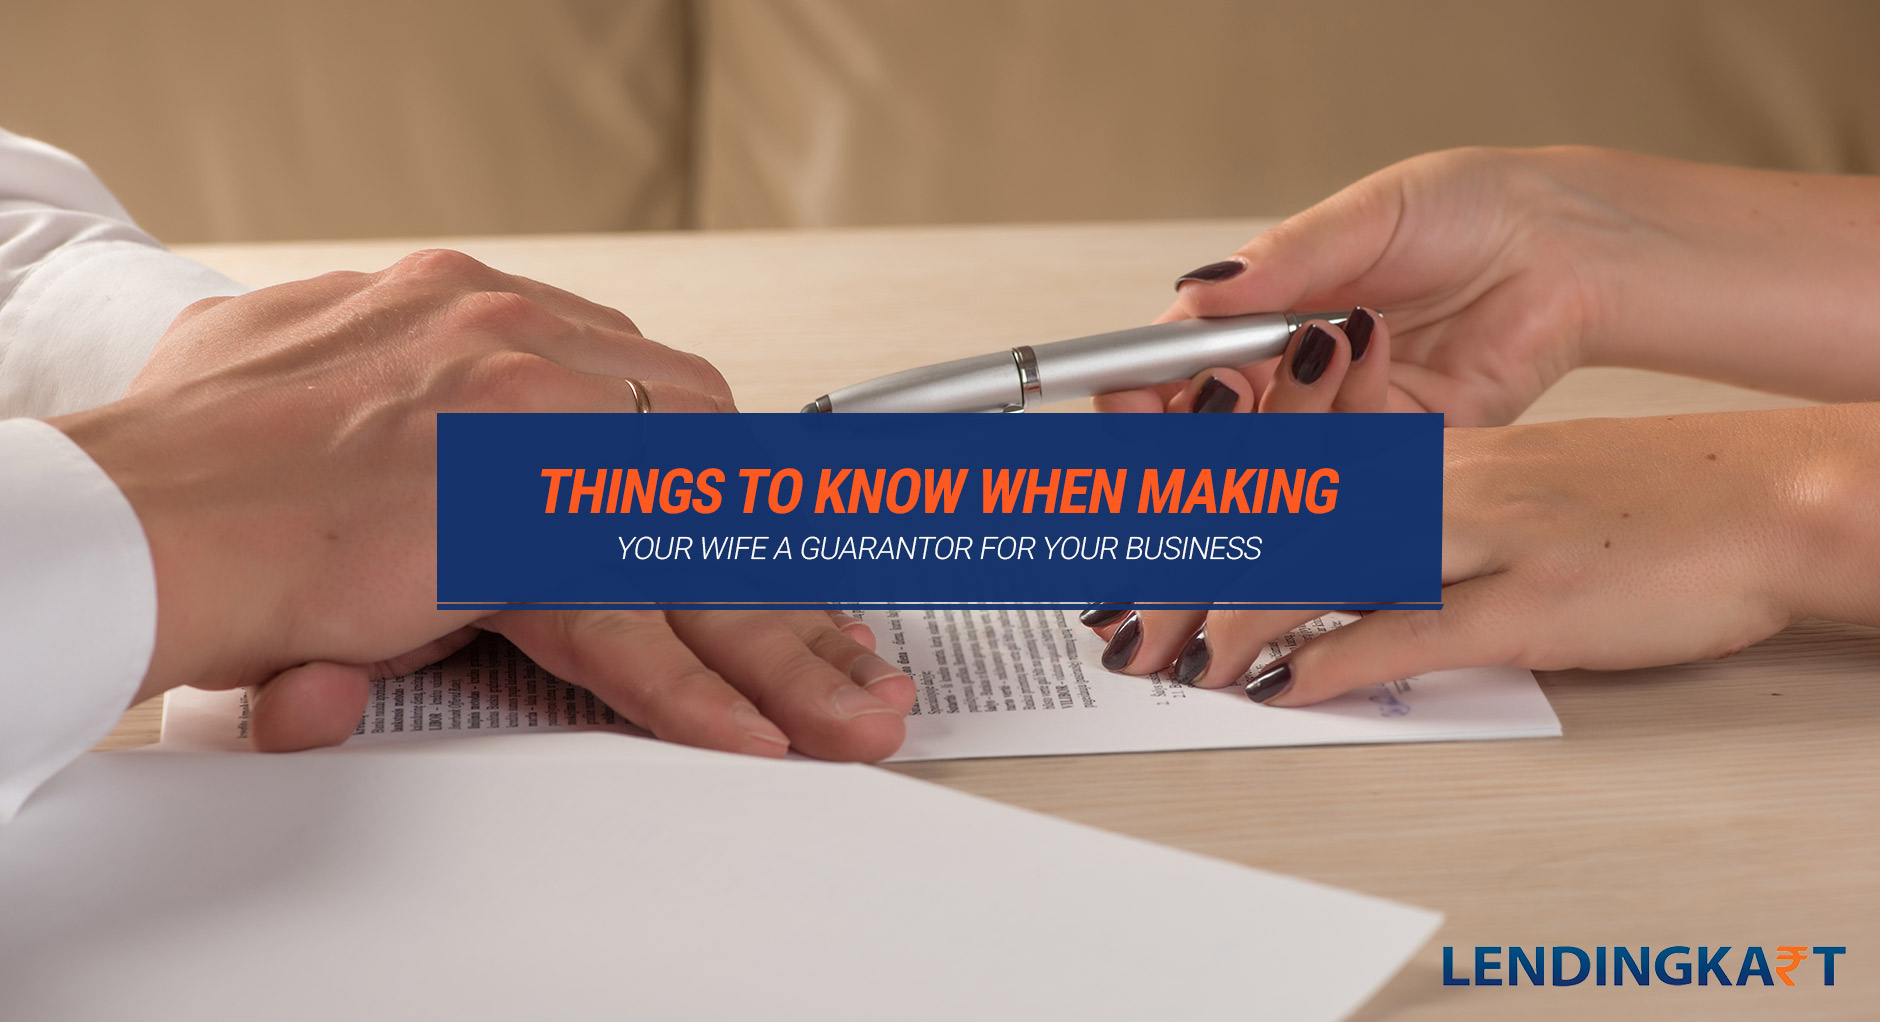 Making Your Wife a Guarantor for Your Business – Things to Know